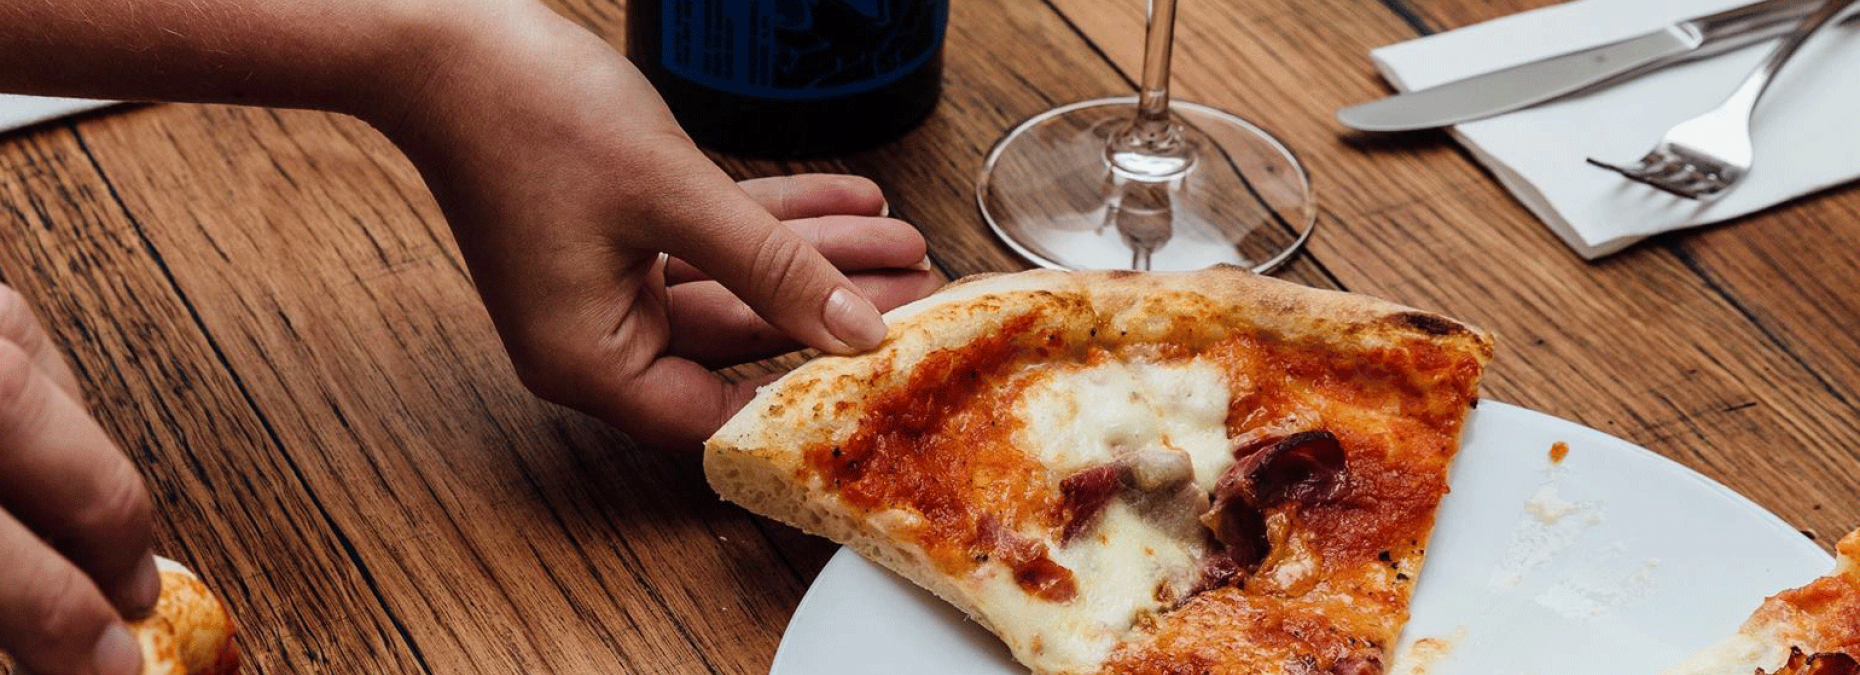 Pizza wine and hands cropped for web 17Jan19